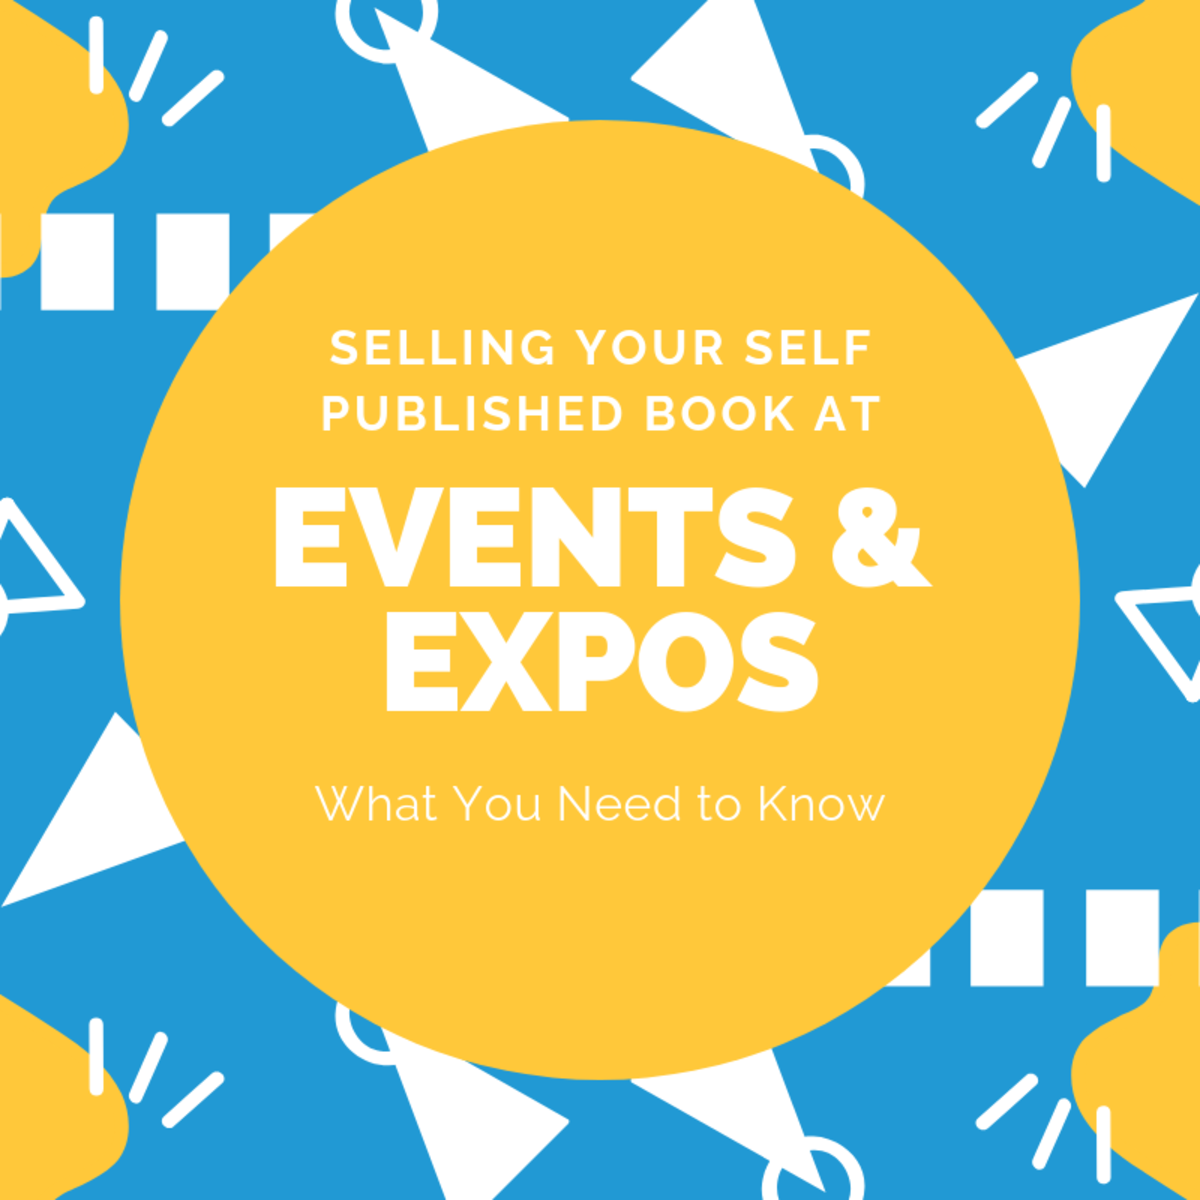 Selling Your Self Published Book at Events and Expos